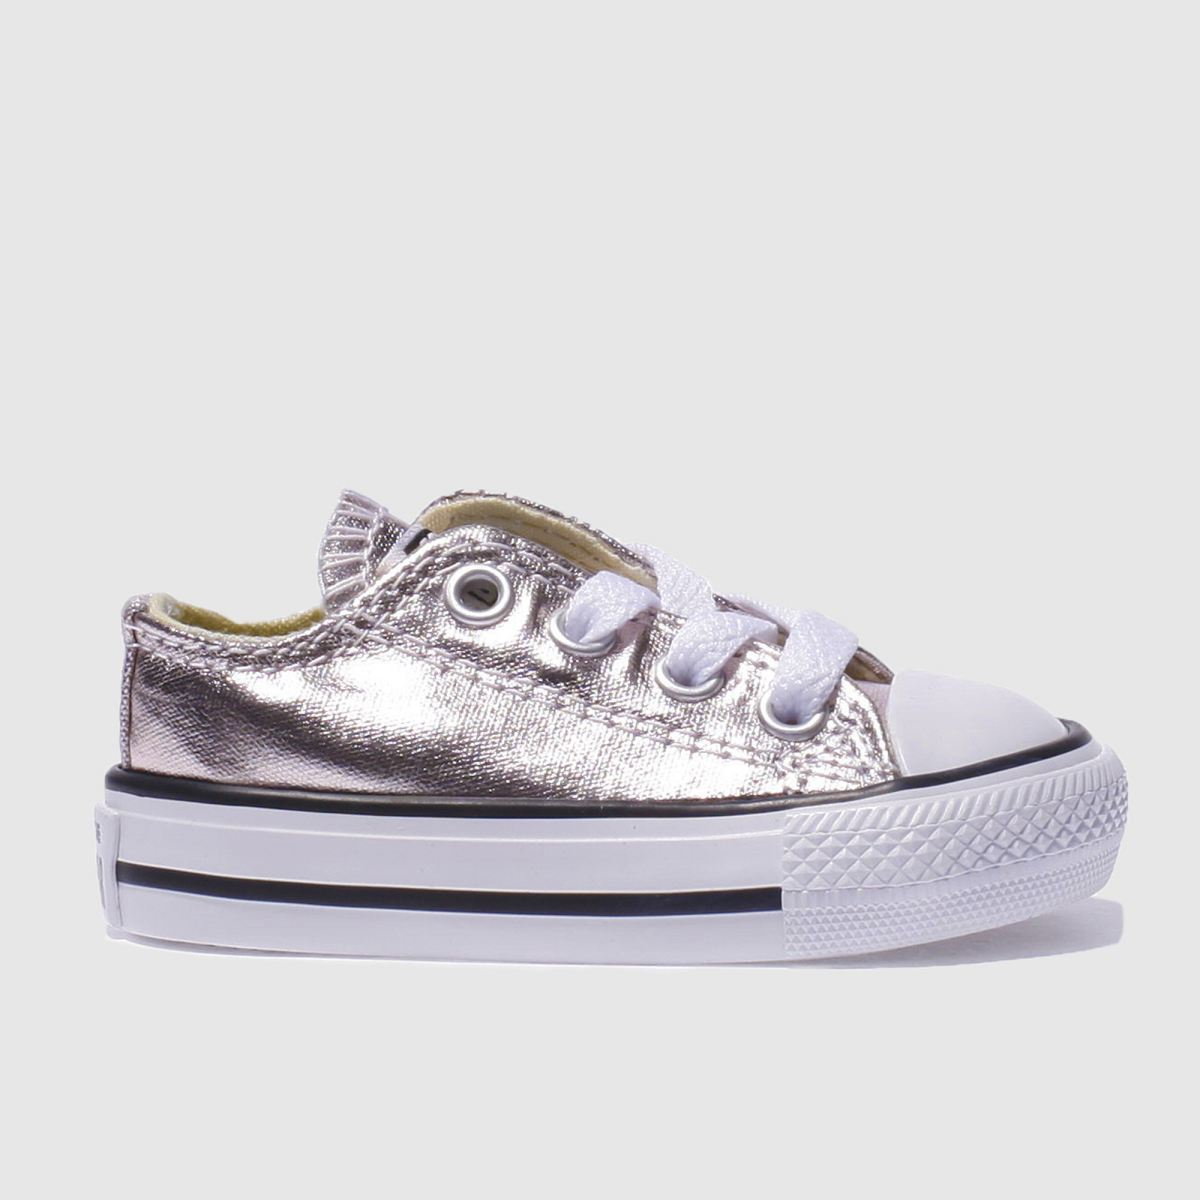 converse rose quartz all star ox metallic Girls Toddler Trainers